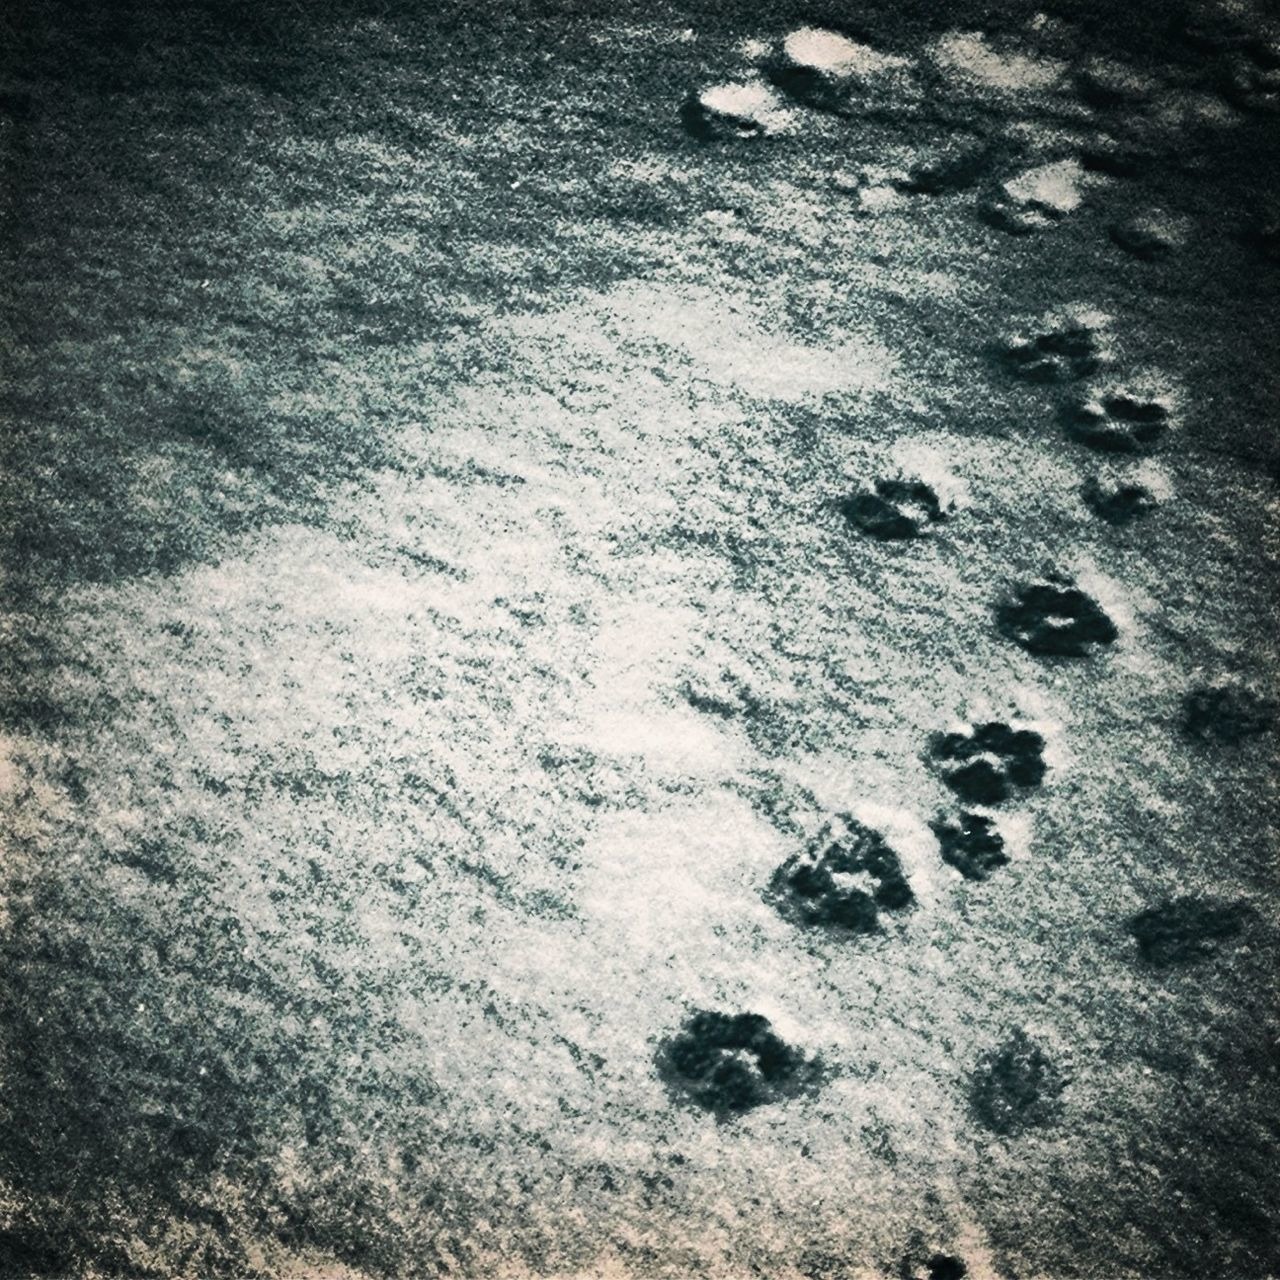 cold temperature, snow, winter, no people, high angle view, footprint, paw print, day, nature, backgrounds, outdoors, close-up